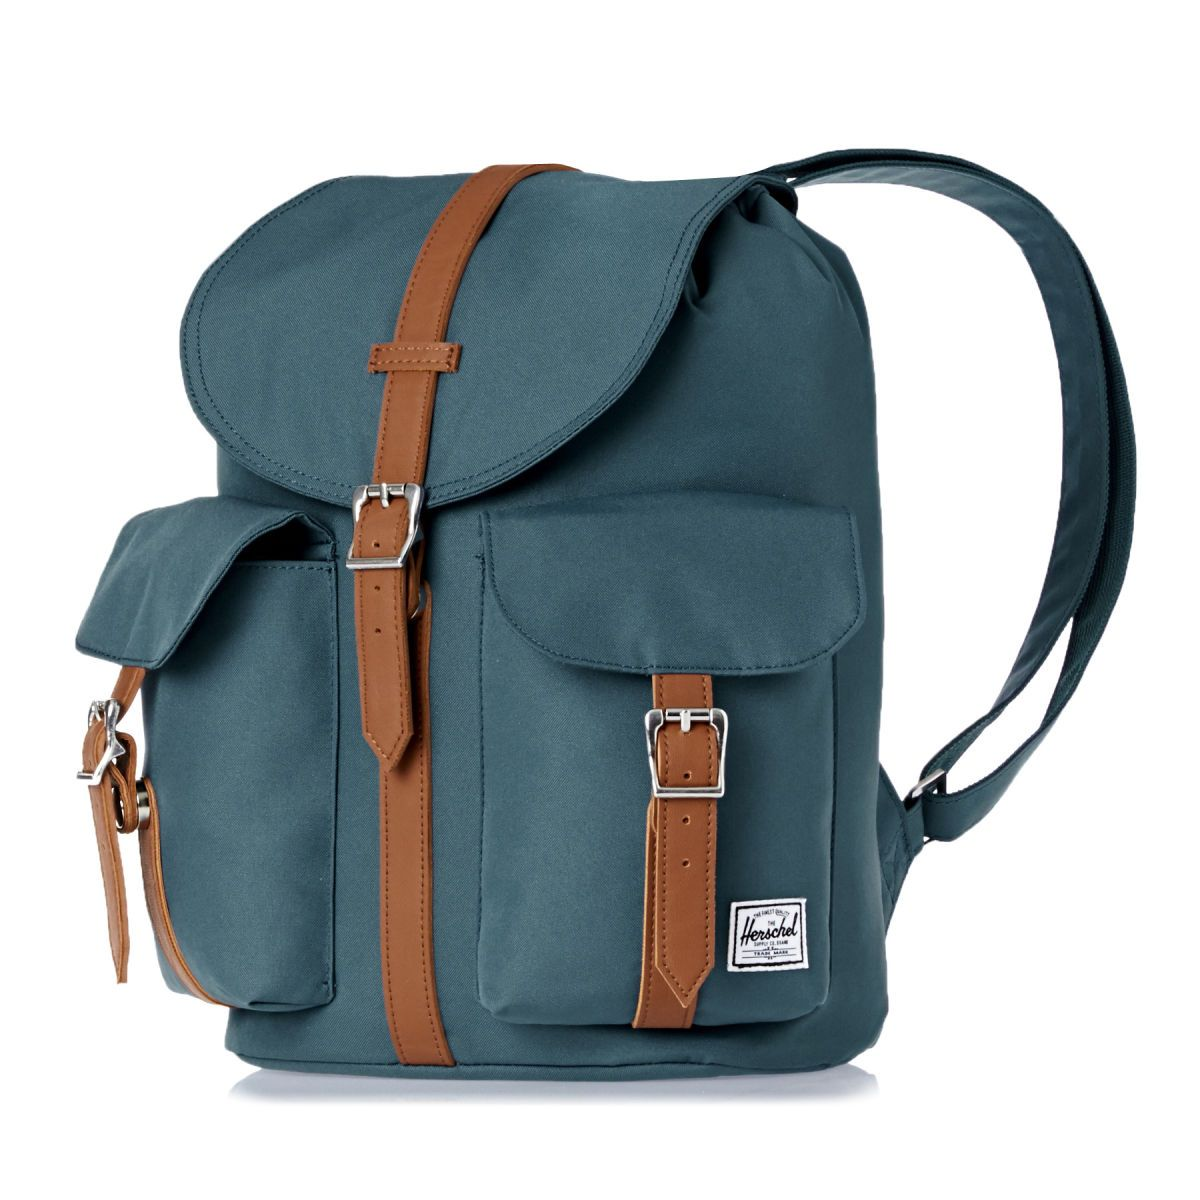 Herschel Dawson Womens Backpack - Indian Teal/Tan